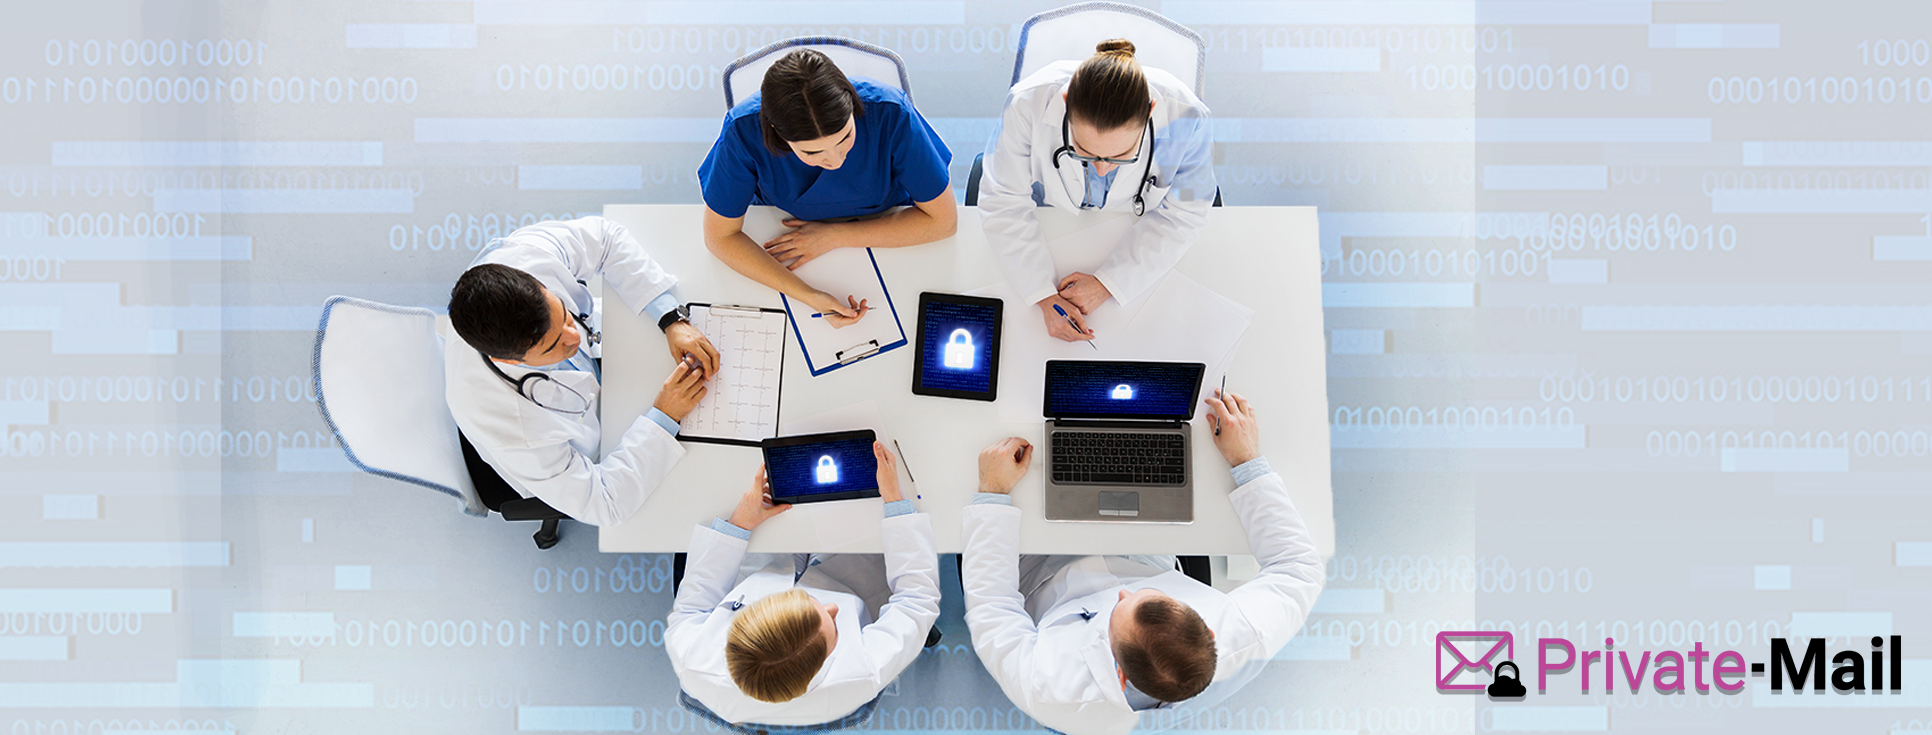 Benefits of Using Encrypted Email and File Storage for HIPAA Compliance